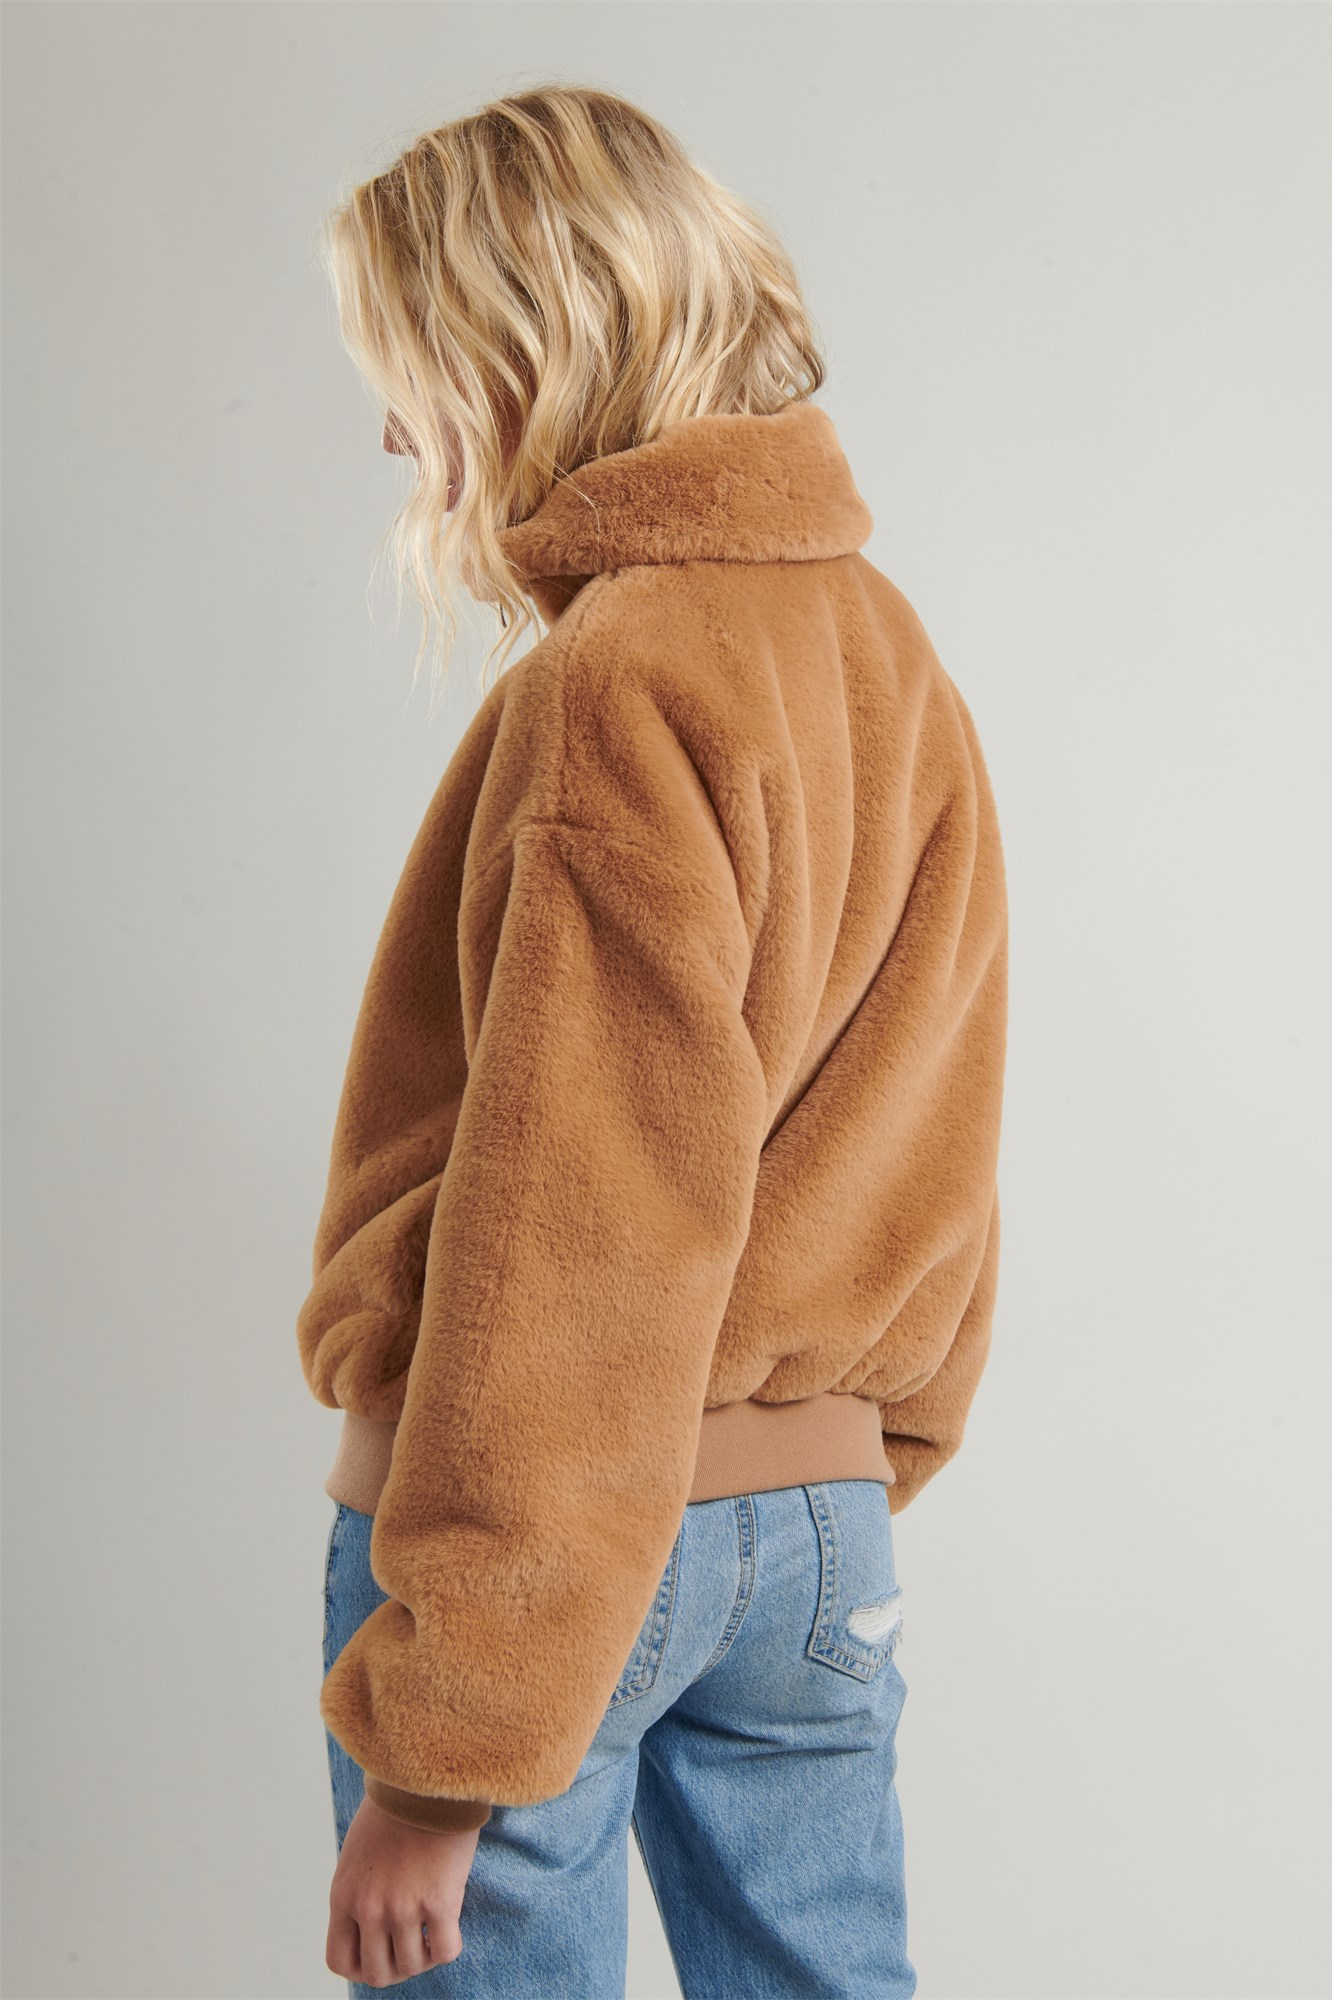 Image 7 of Furry Bomber